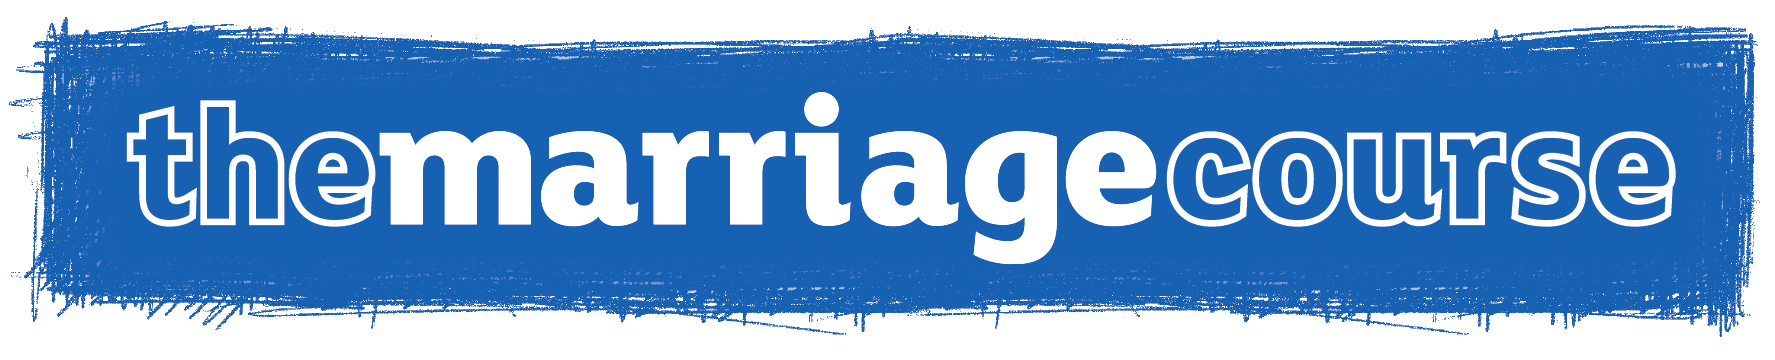 The-marriage-course-word